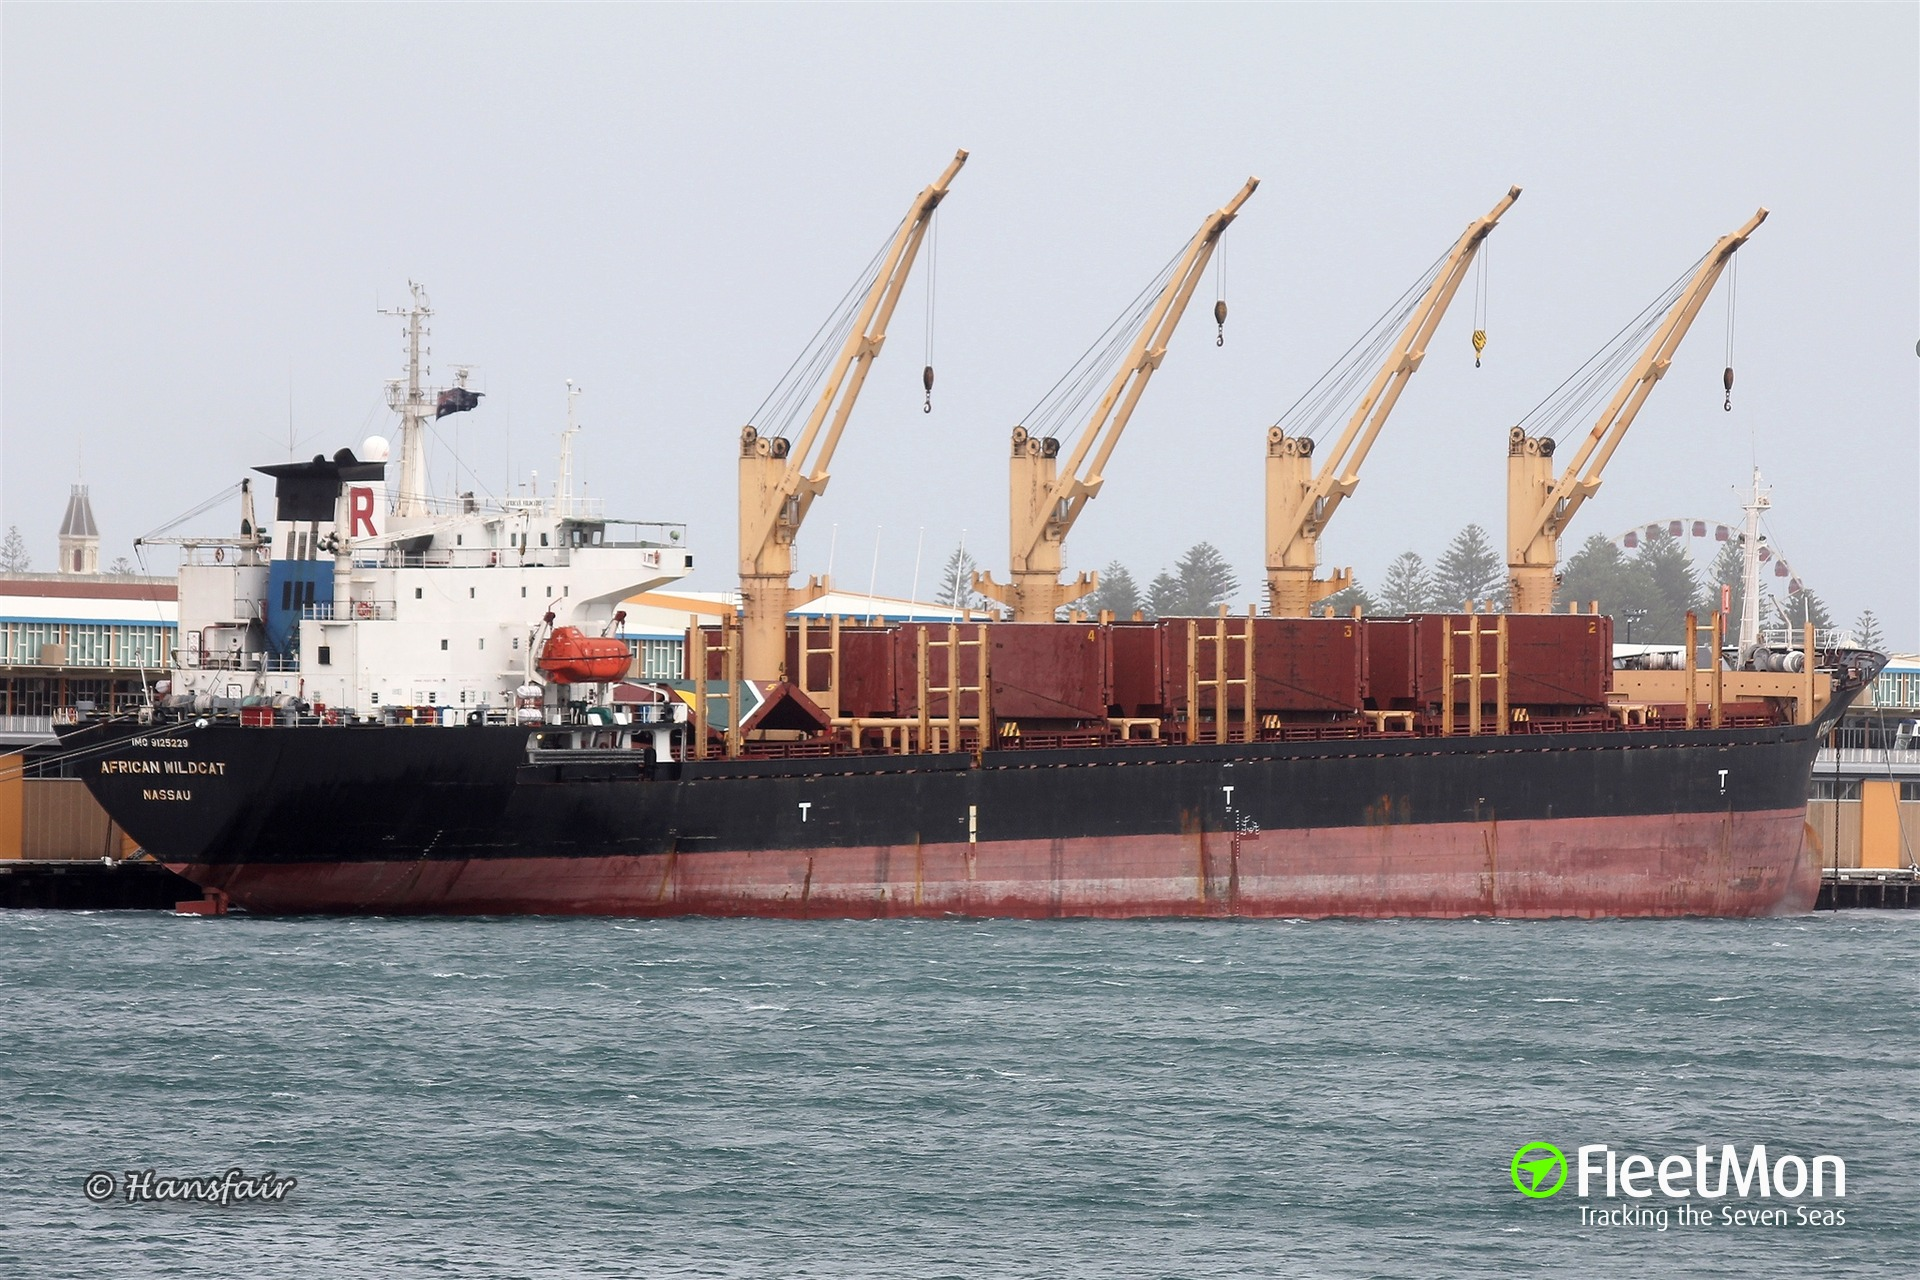 Bulk carrier adrift in Indian ocean